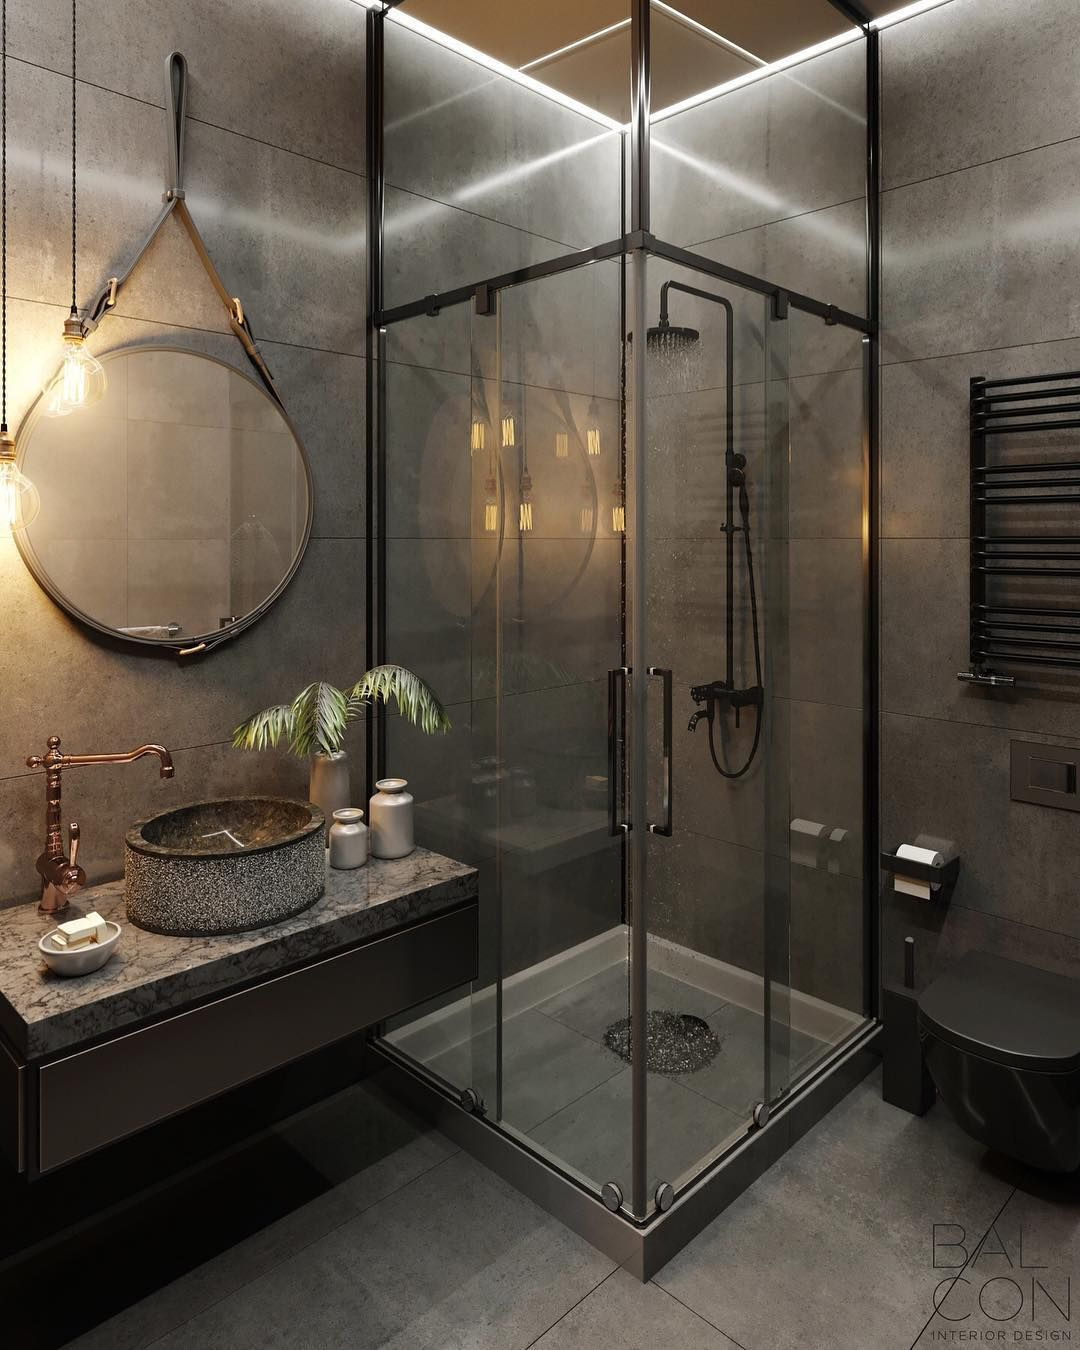 20+ Fabulous Ideas for Showers That You Might Want